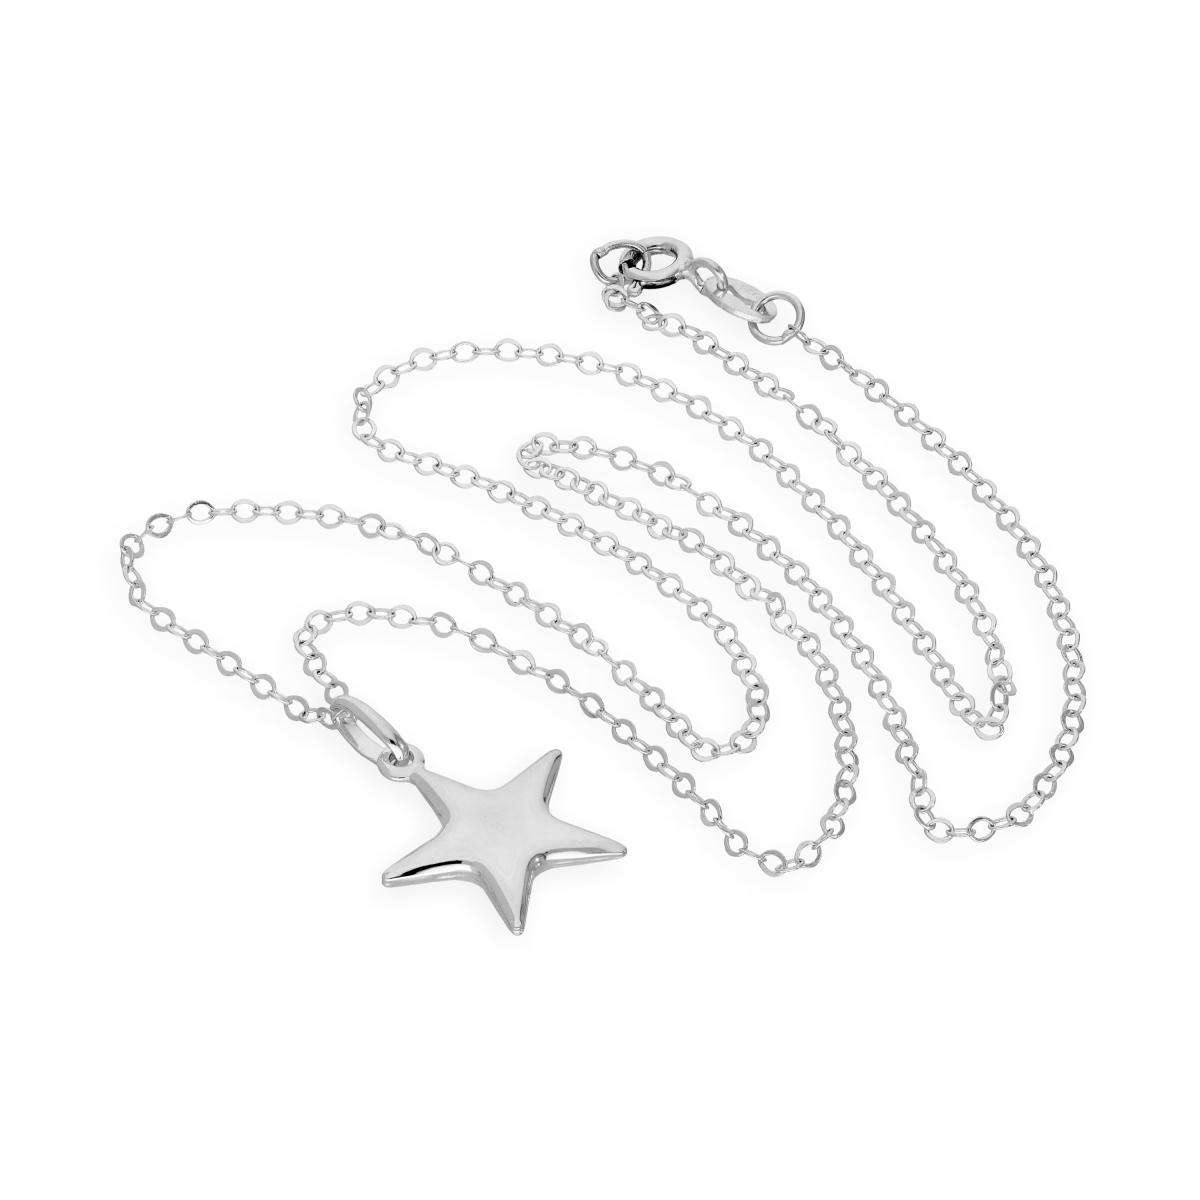 Alterative image for Sterling Silver Star Pendant Necklace 16 - 22 Inches